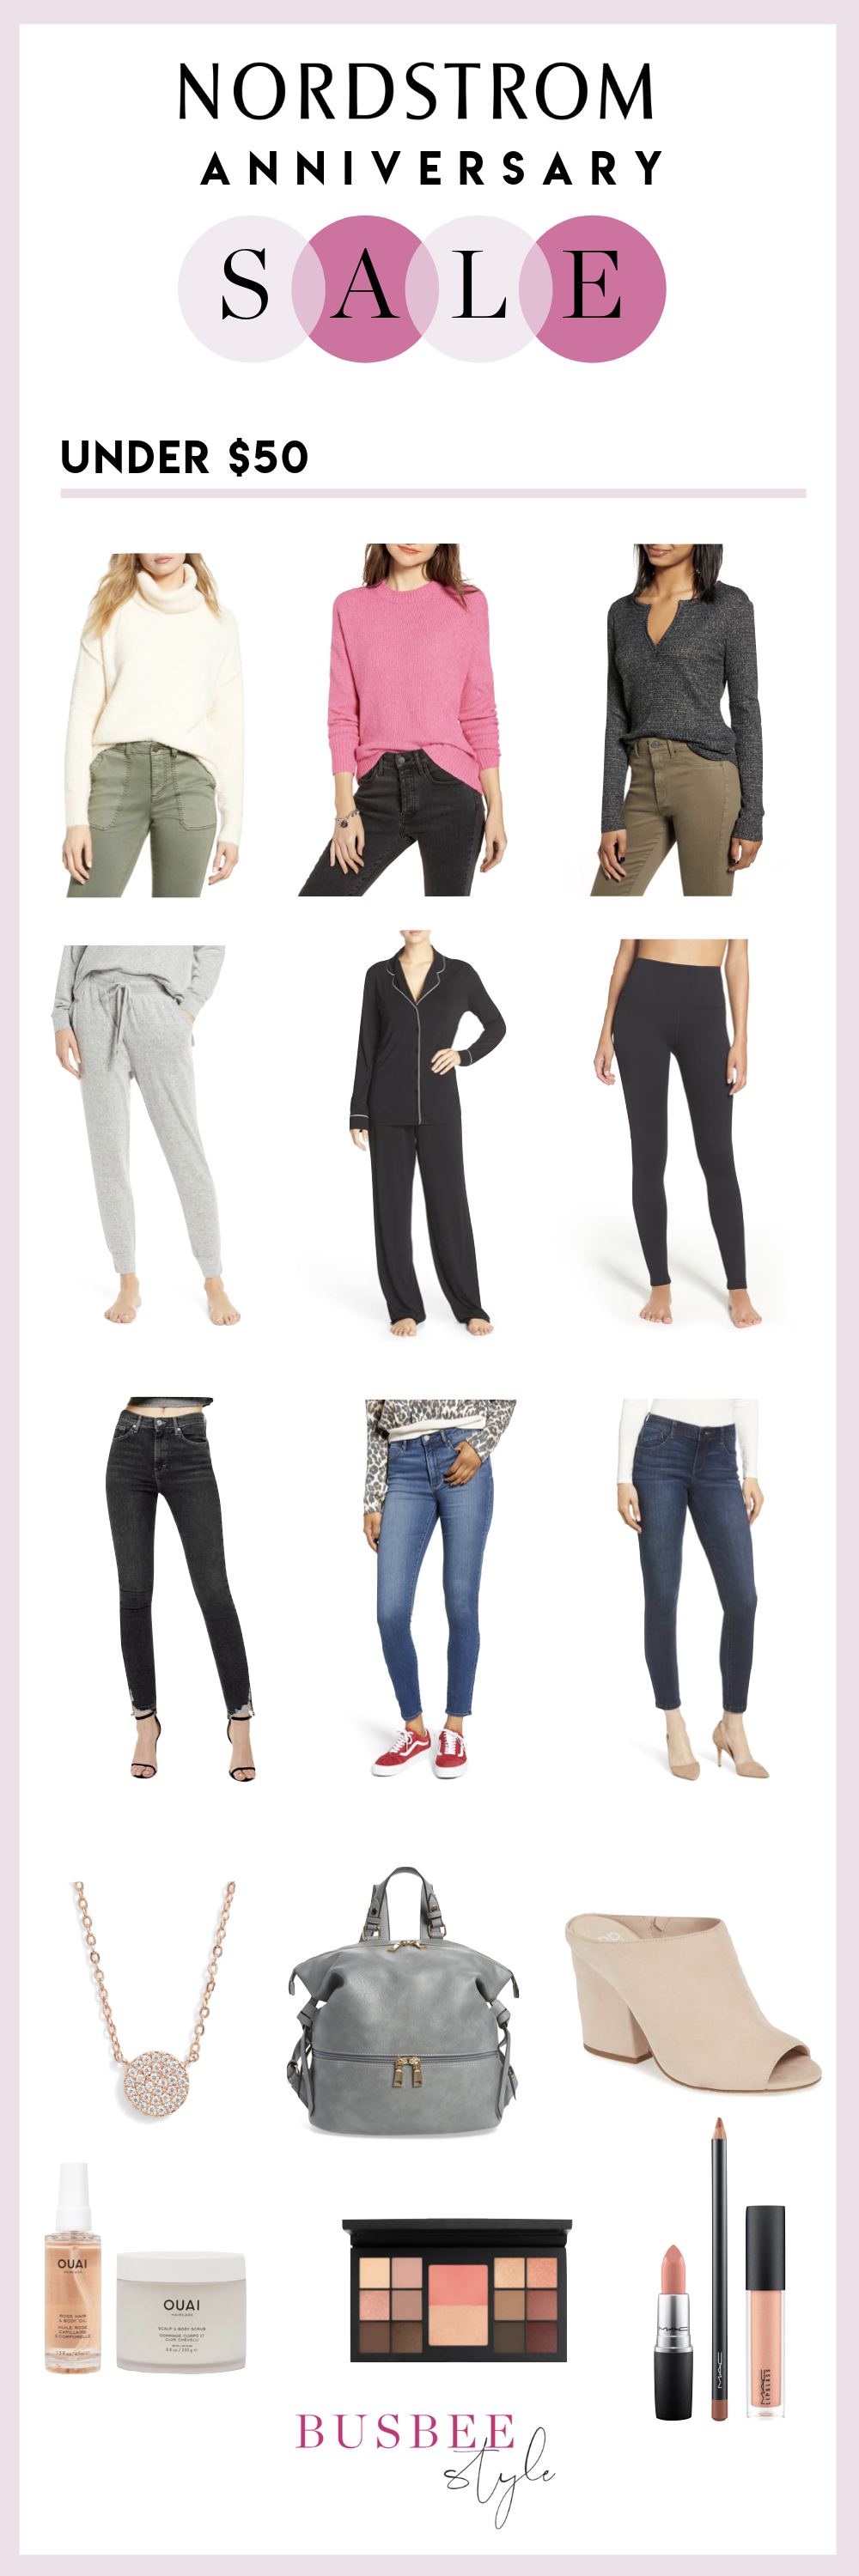 Under $50, Fashion blogger Erin Busbee of BusbeeStyle.com sharing her favorites under $50 from the Nordstrom Anniversary Sale 2019